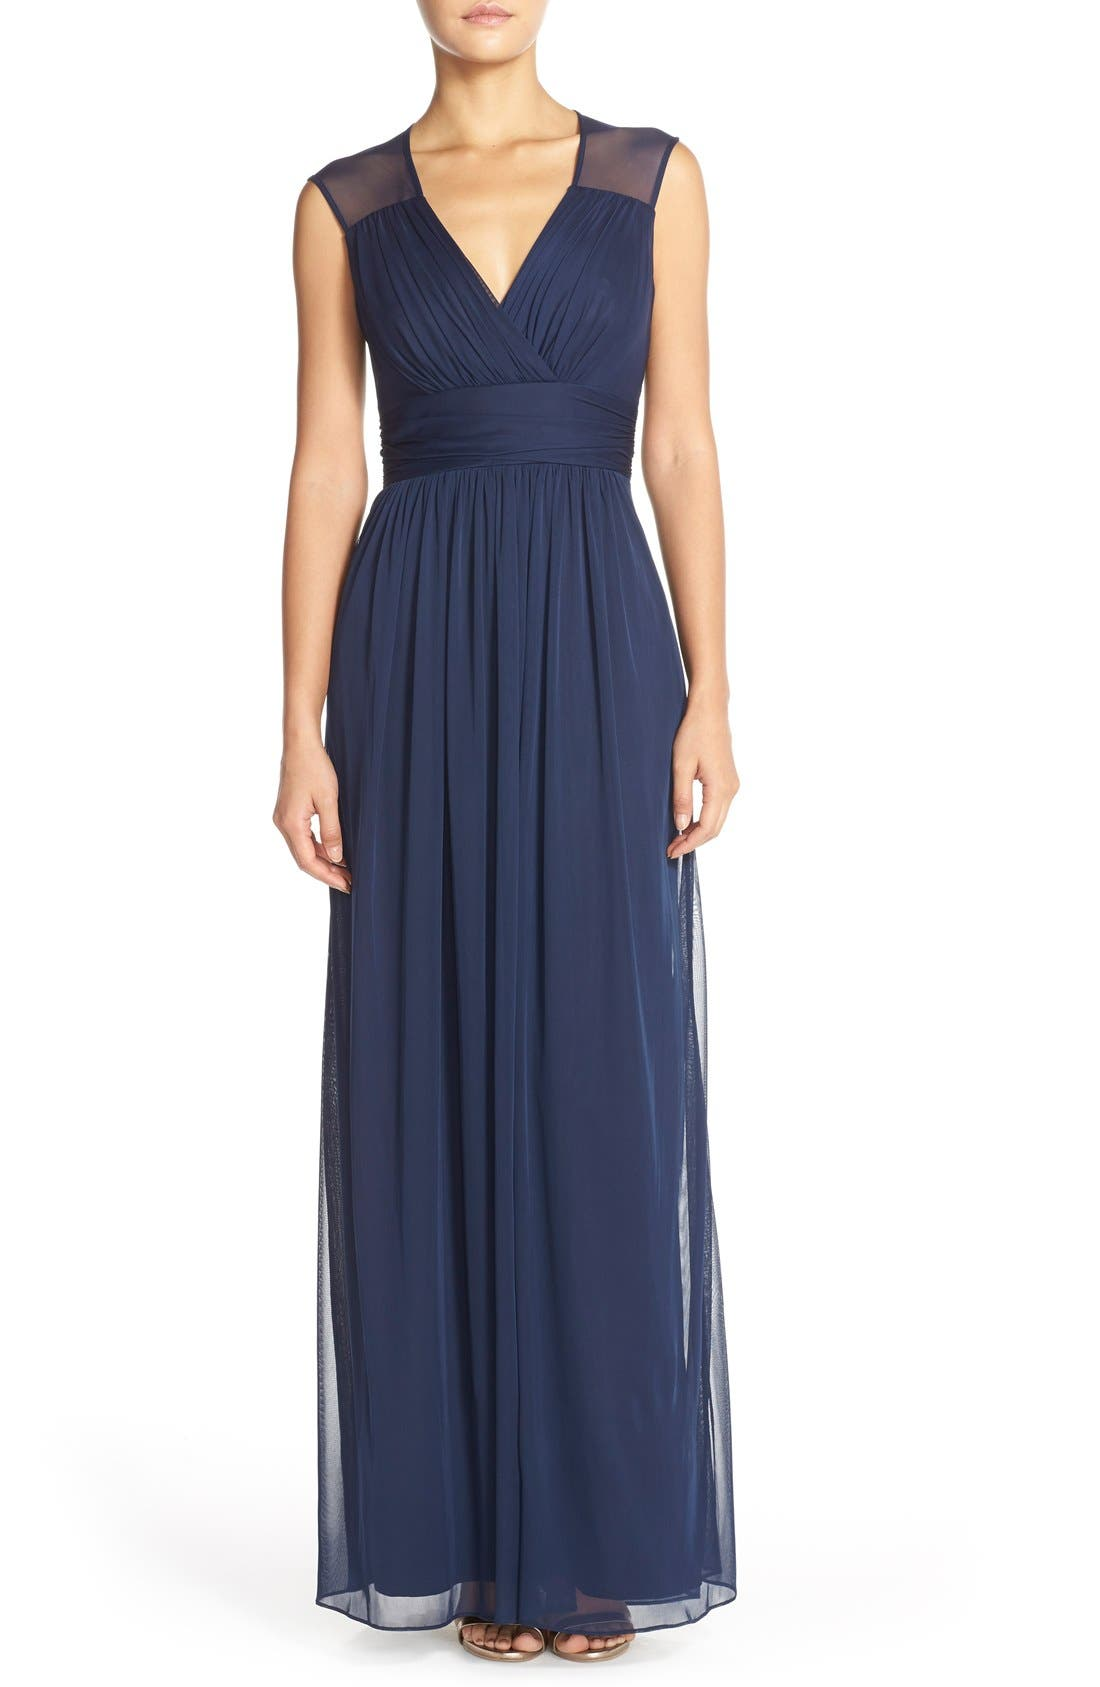 ALFRED SUNG Shirred Chiffon Cap Sleeve Gown, Main, color, MIDNIGHT